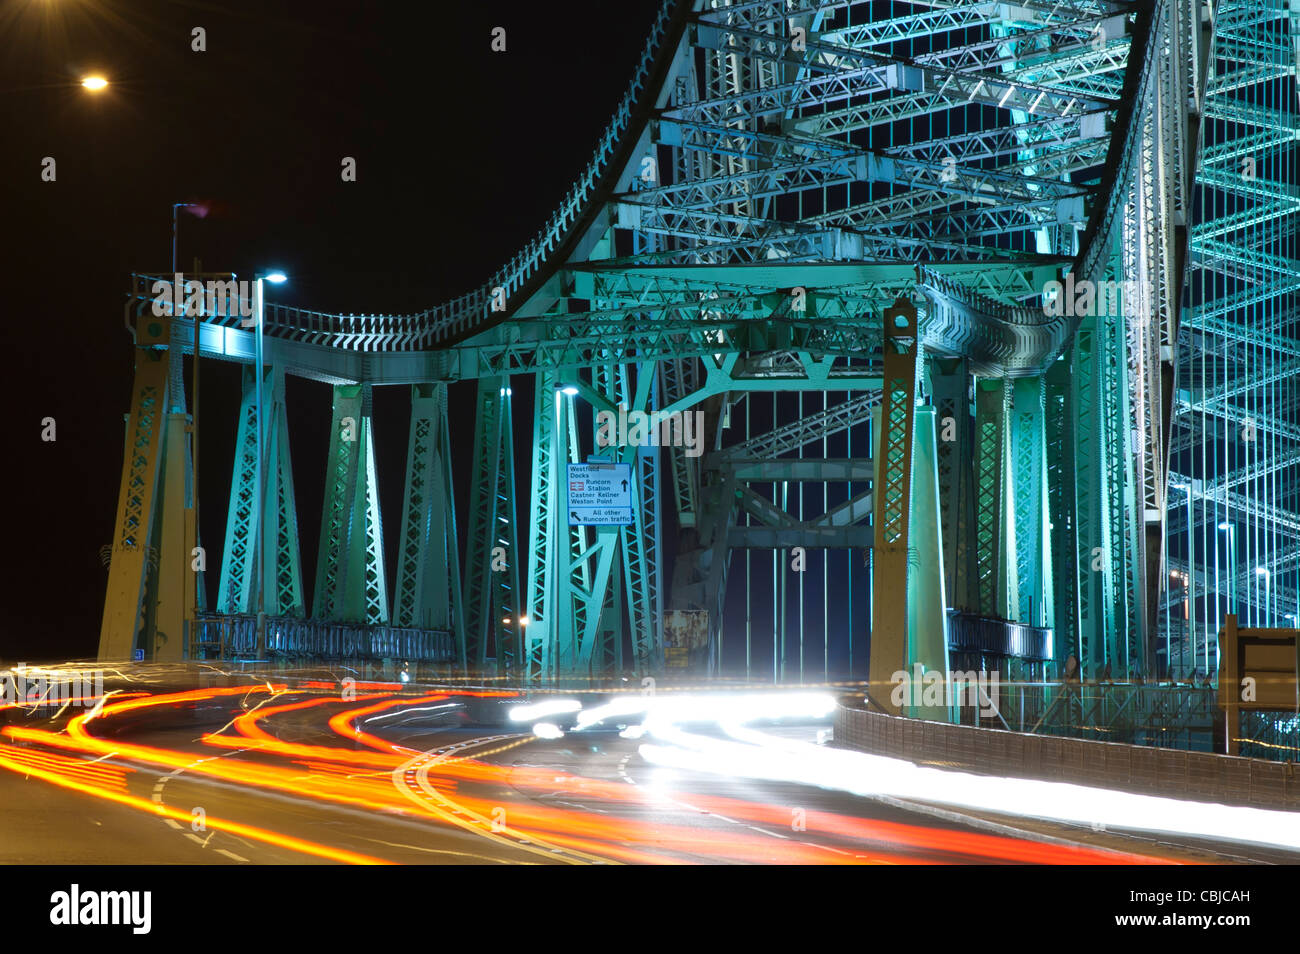 Widnes-Runcorn Silver Jubilee Bridge, photographed at night with long exposure to produce light-trails - Stock Image